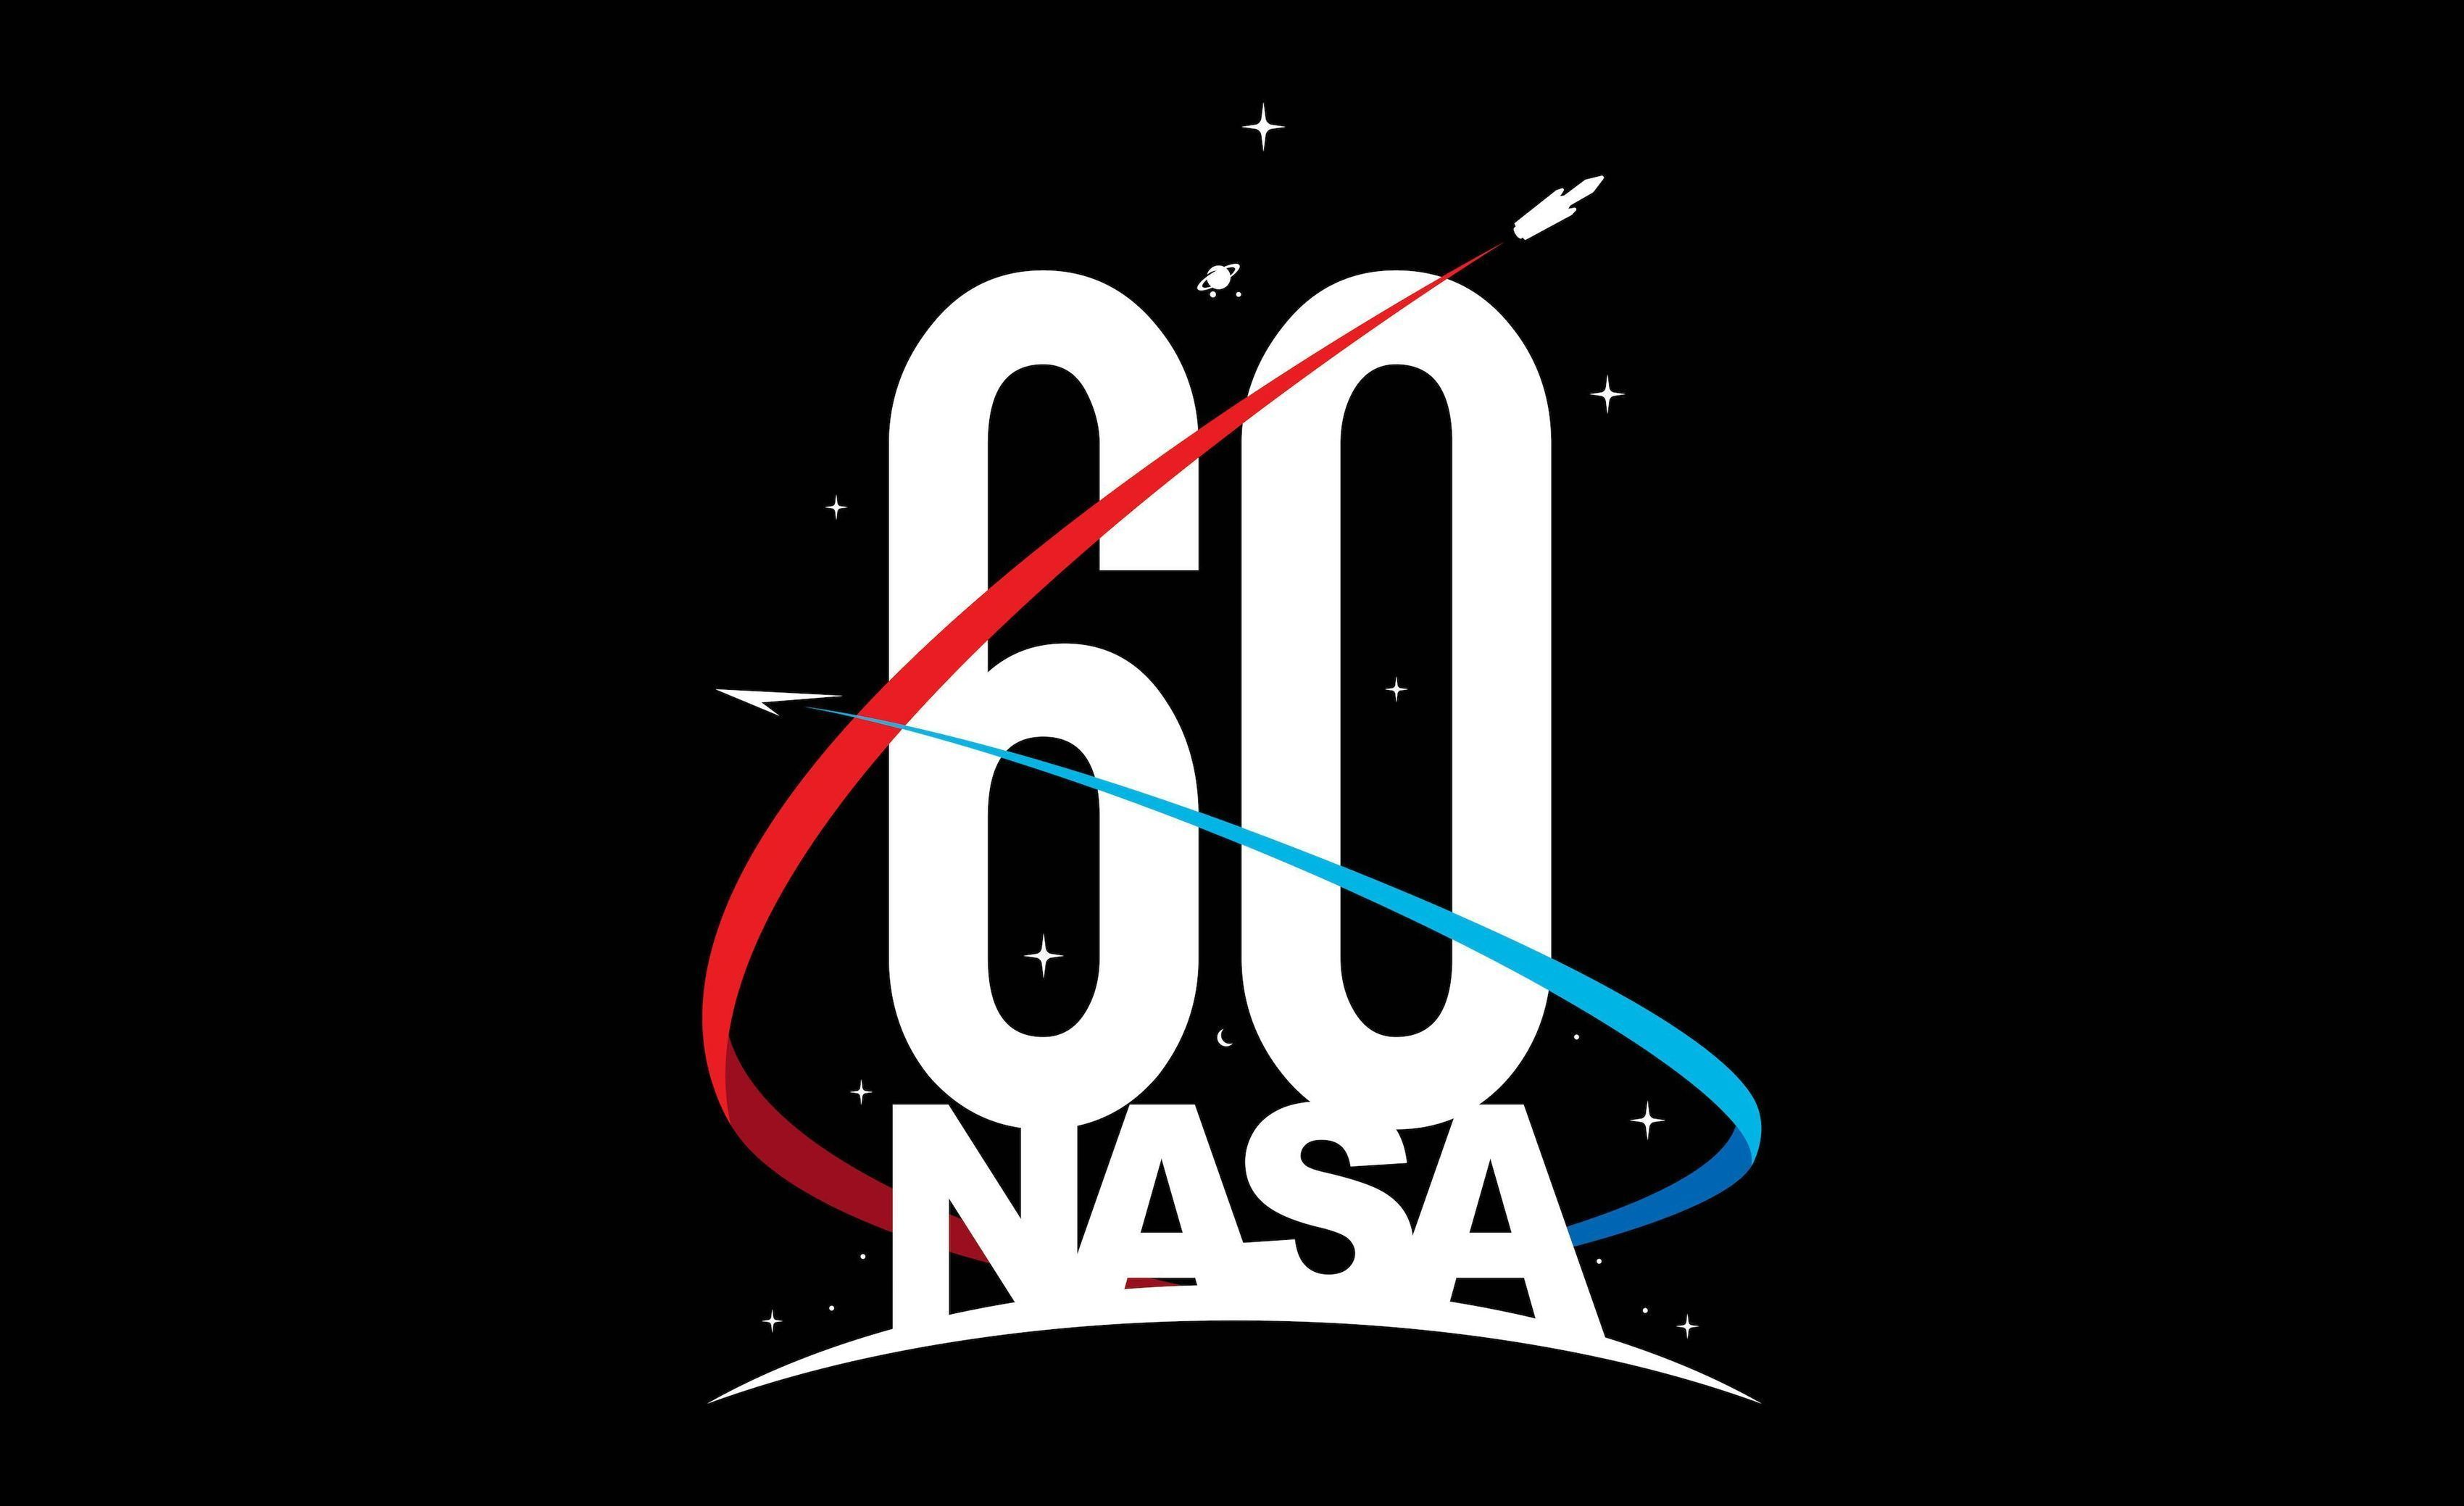 NASA 60th anniversary: All about the space agen